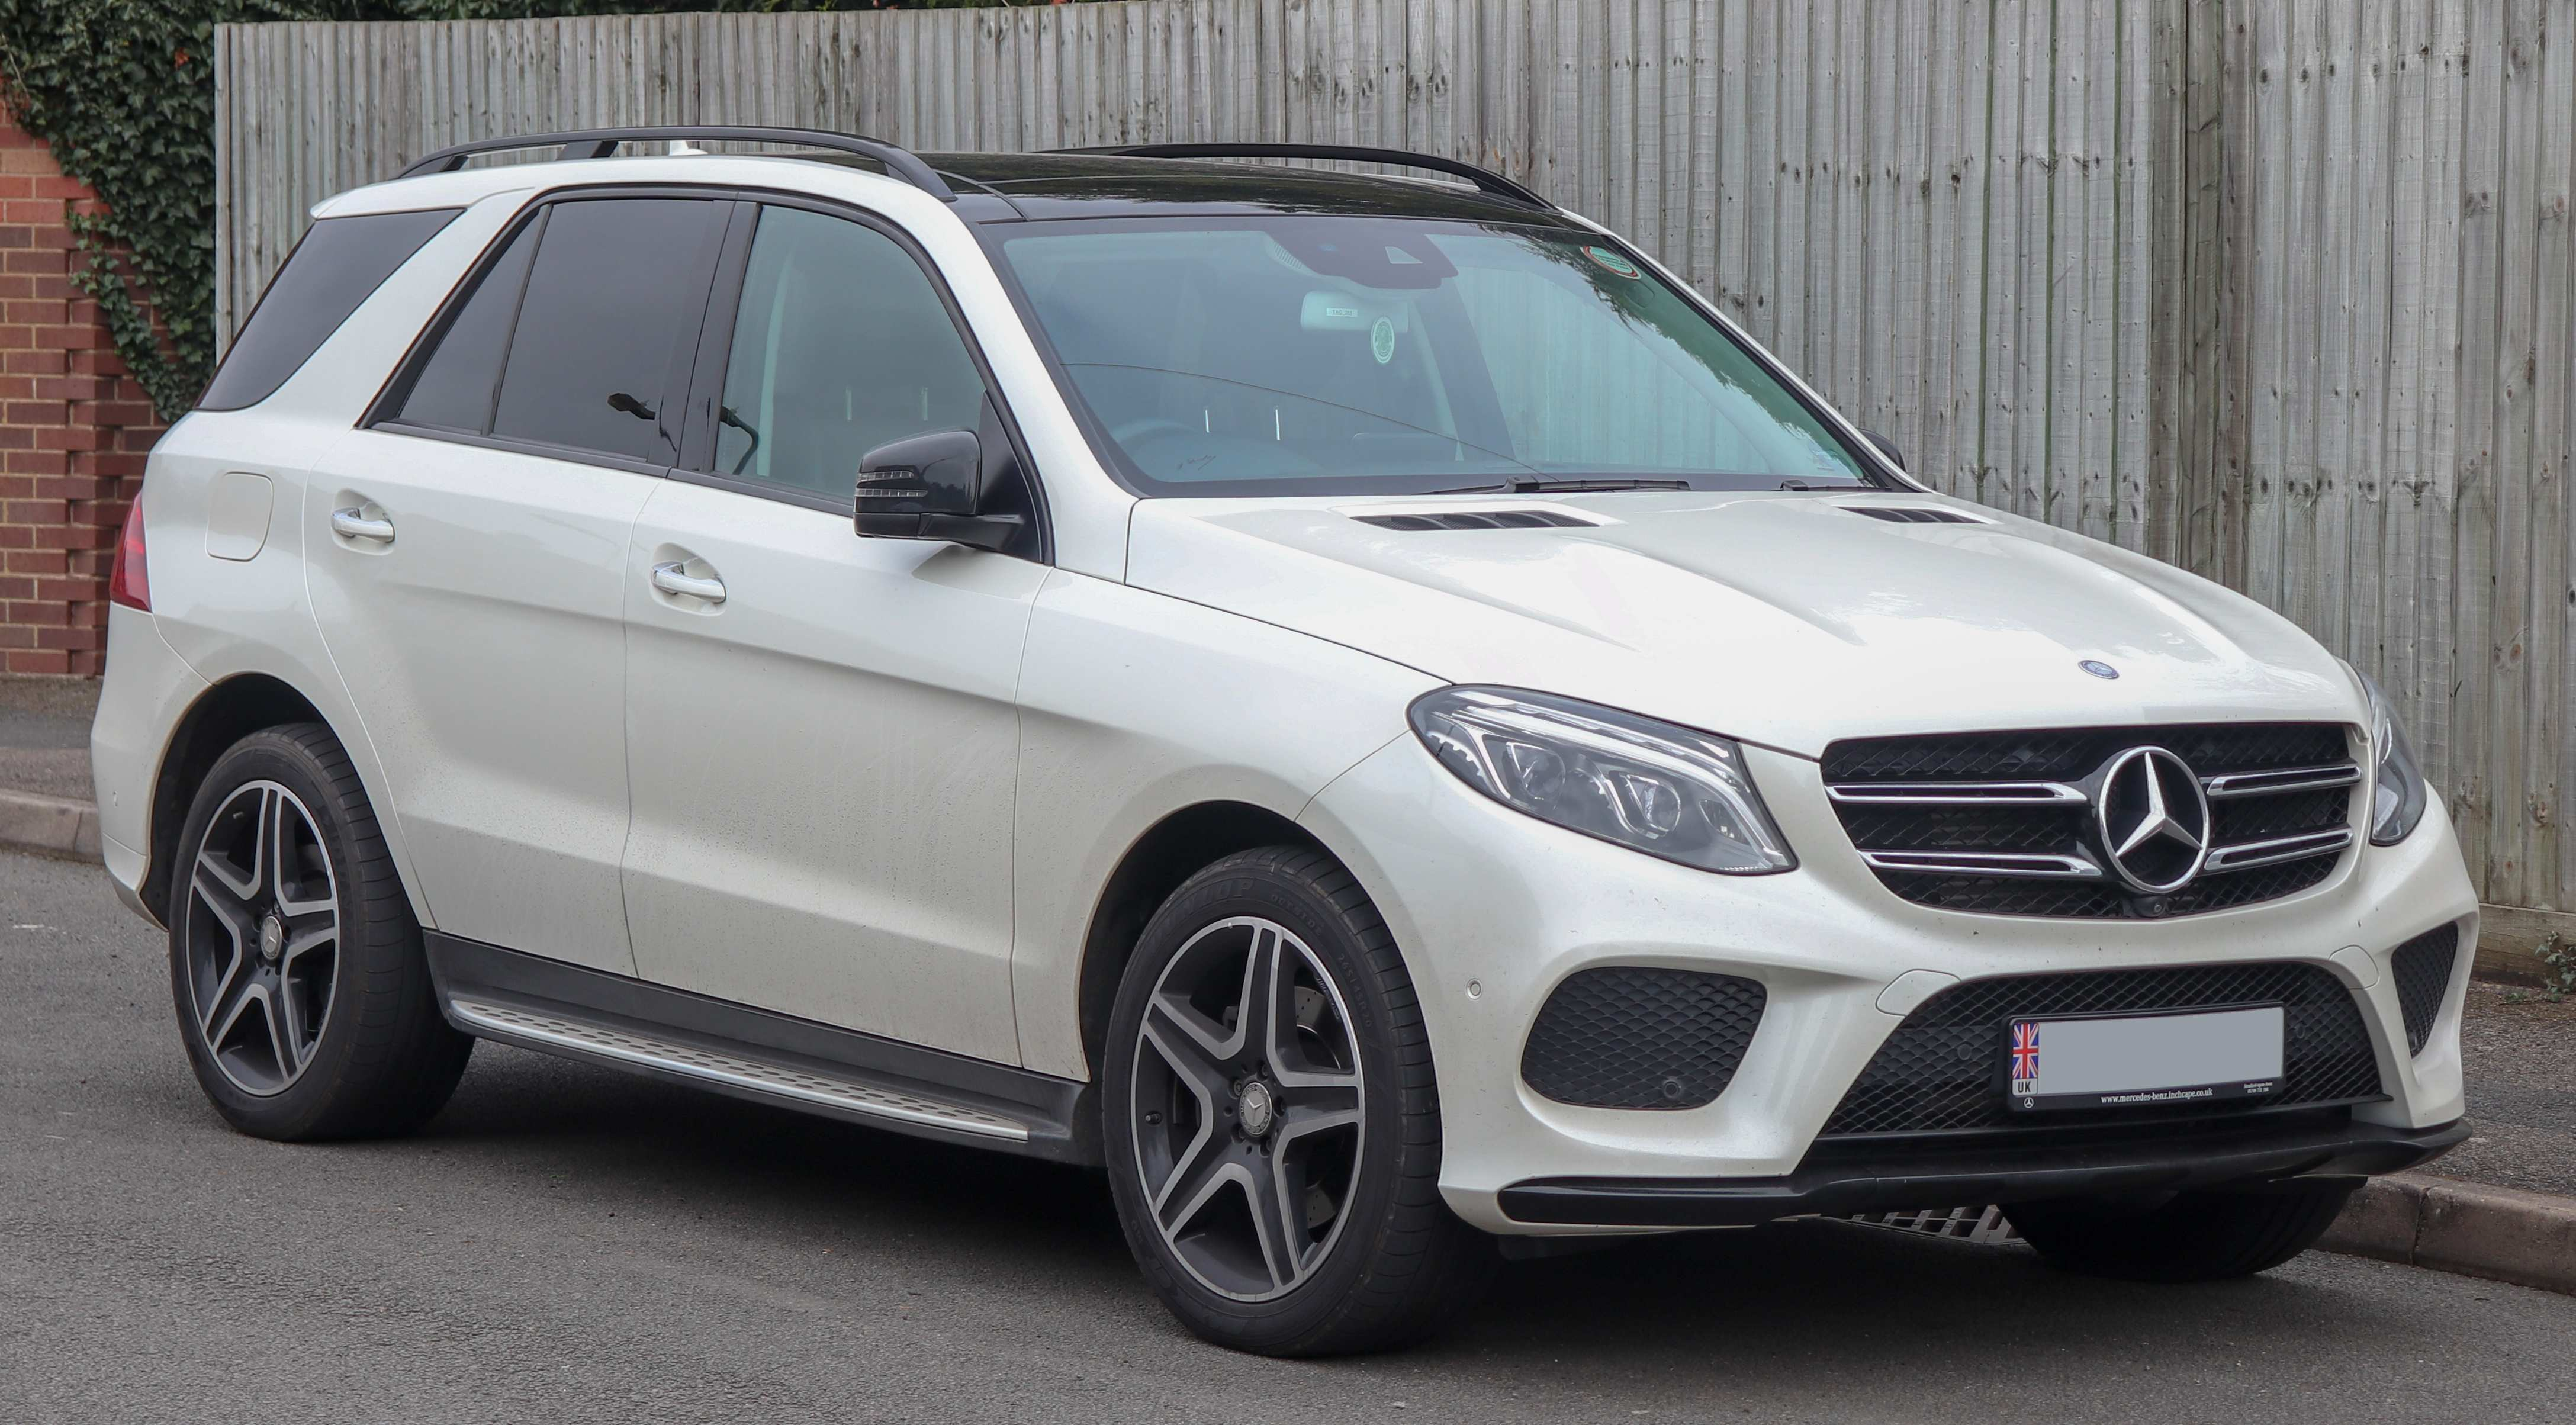 73 A 2019 Mercedes ML Class 400 Review And Release Date